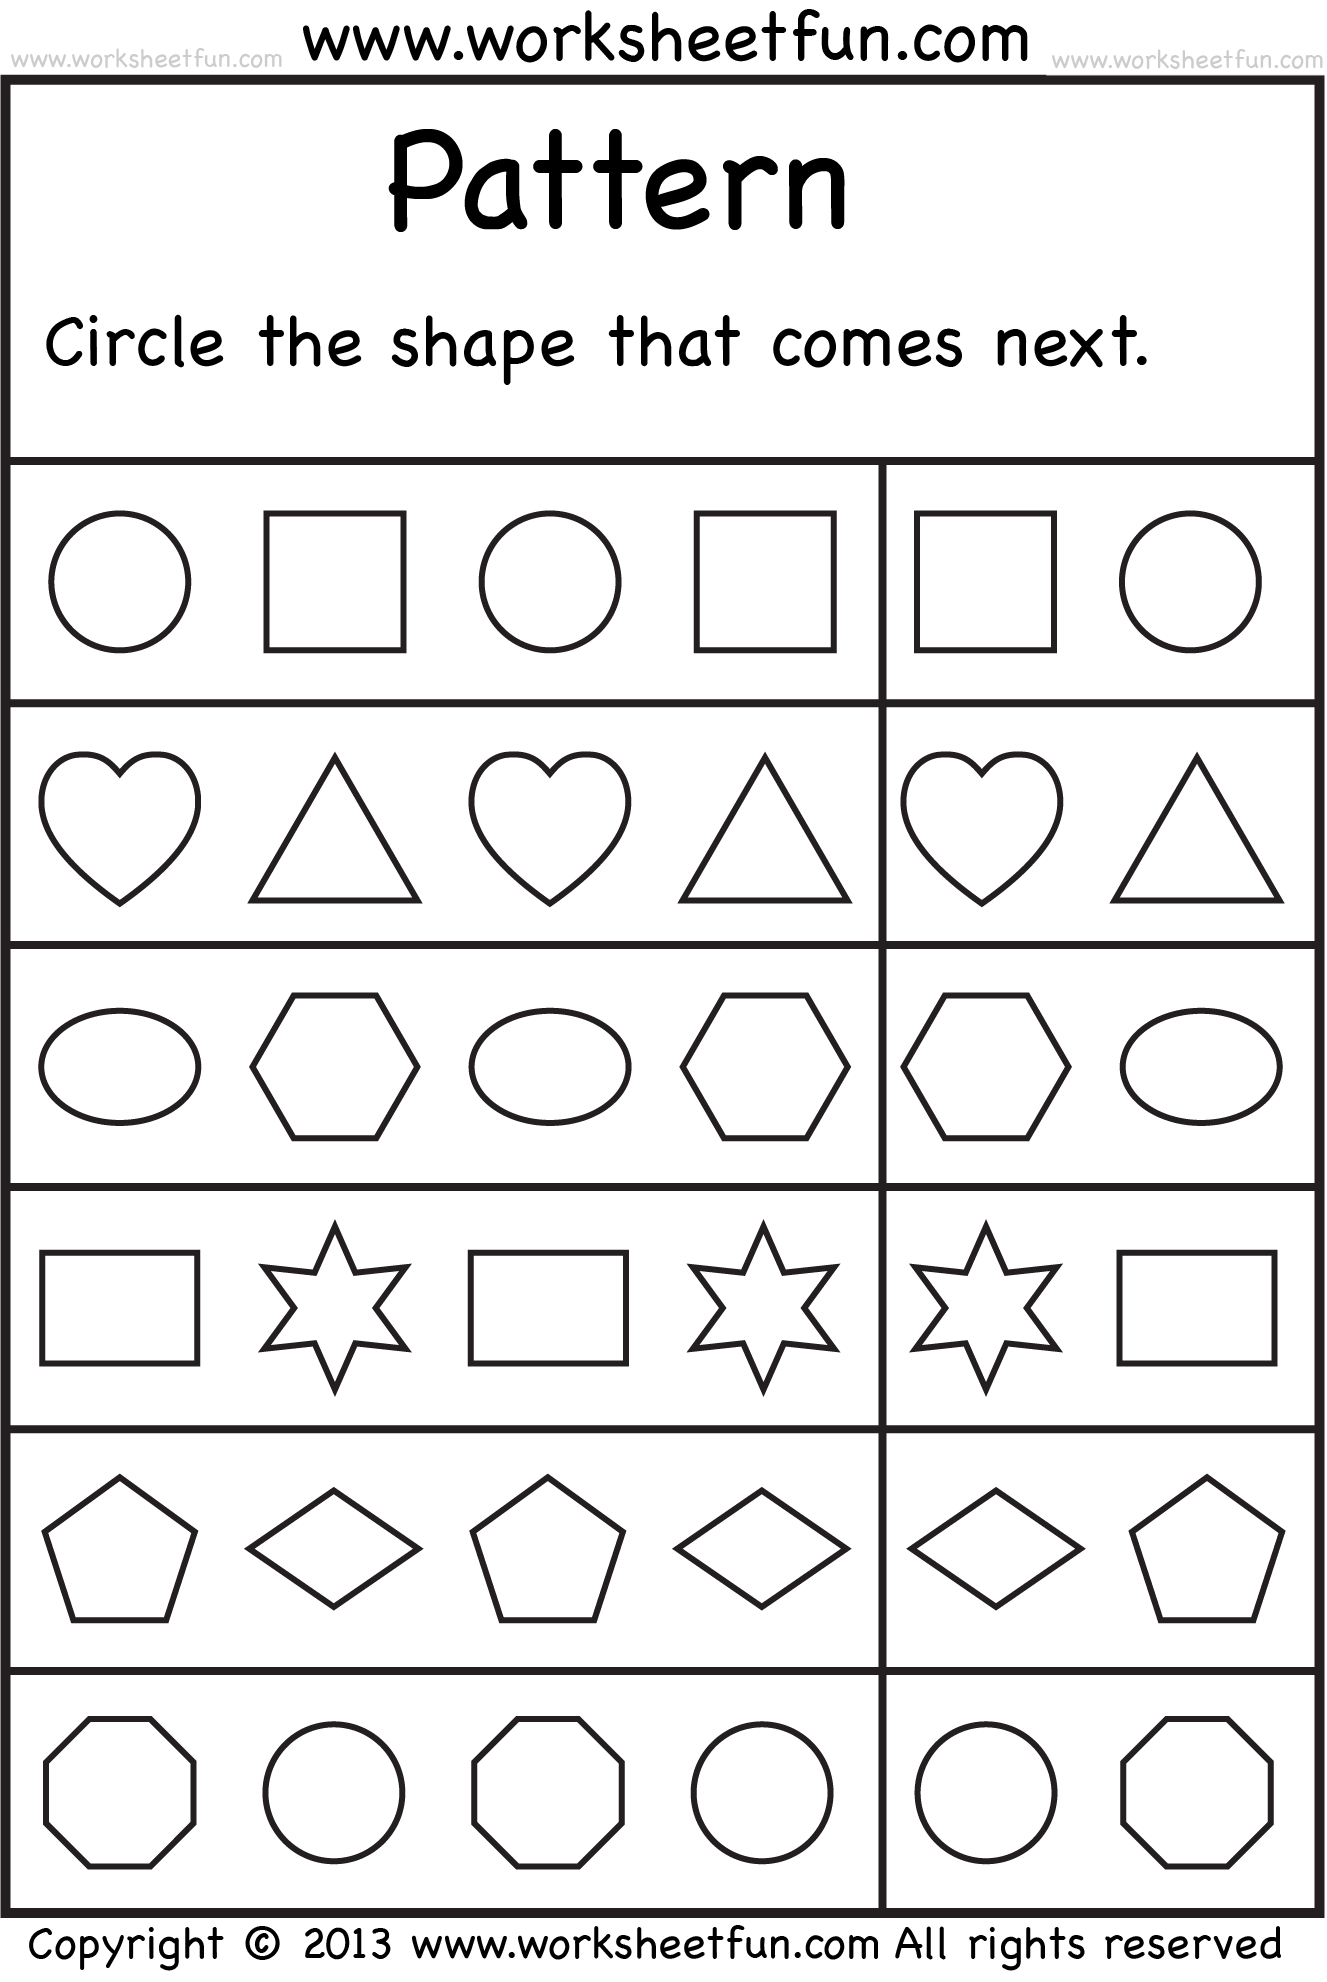 Weirdmailus  Sweet  Images About School Worksheets On Pinterest  Number Words  With Luxury  Images About School Worksheets On Pinterest  Number Words Alphabet Worksheets And Free Printable Kindergarten Worksheets With Extraordinary Map Skills Worksheet Also Parts Of A Cell Worksheet In Addition Pre K Reading Worksheets And Factoring Ax Bx C Worksheet Answers As Well As Bill Nye Gravity Worksheet Additionally Number  Worksheets From Pinterestcom With Weirdmailus  Luxury  Images About School Worksheets On Pinterest  Number Words  With Extraordinary  Images About School Worksheets On Pinterest  Number Words Alphabet Worksheets And Free Printable Kindergarten Worksheets And Sweet Map Skills Worksheet Also Parts Of A Cell Worksheet In Addition Pre K Reading Worksheets From Pinterestcom